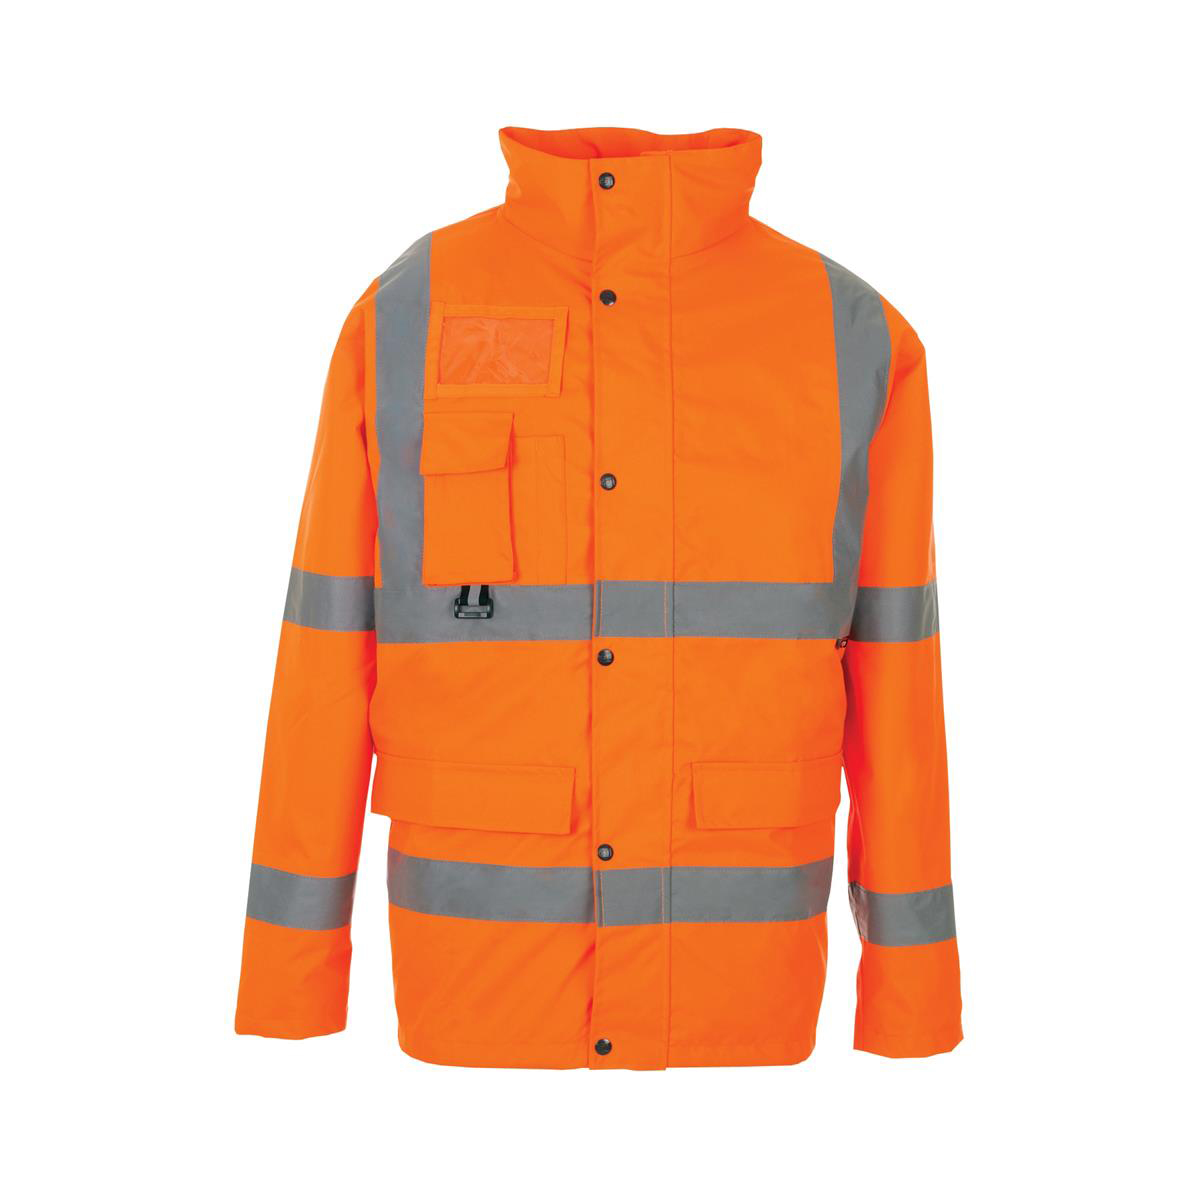 High Visibility Breathable Jacket Multifunctional Medium Orange Ref JJORM Approx 2/3 Day Leadtime